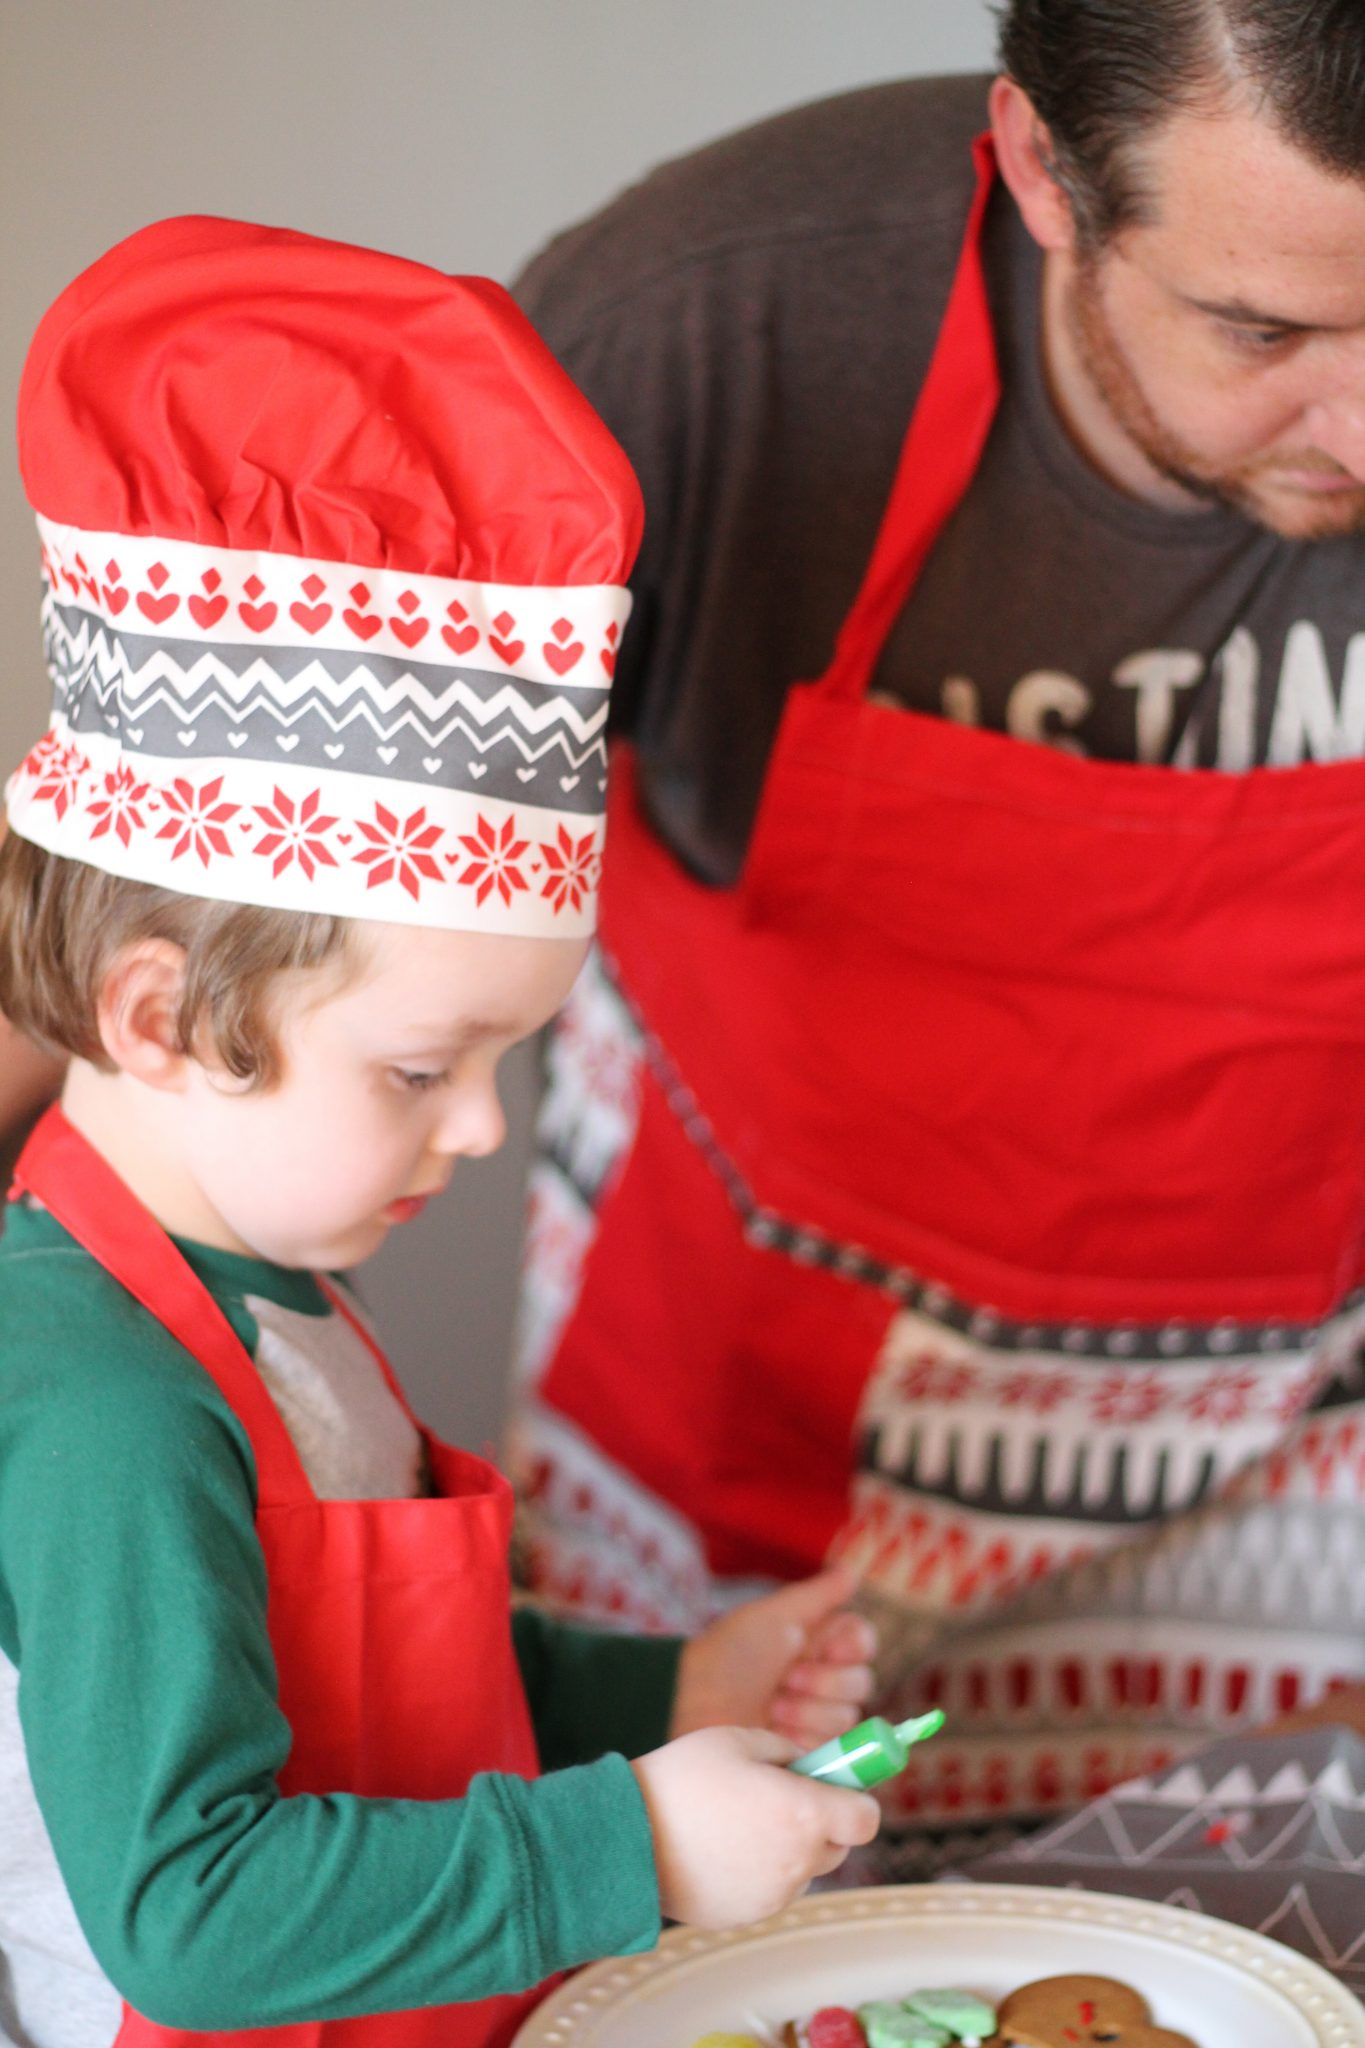 5 Easy Ways to Make Holiday Memories with Your Kids